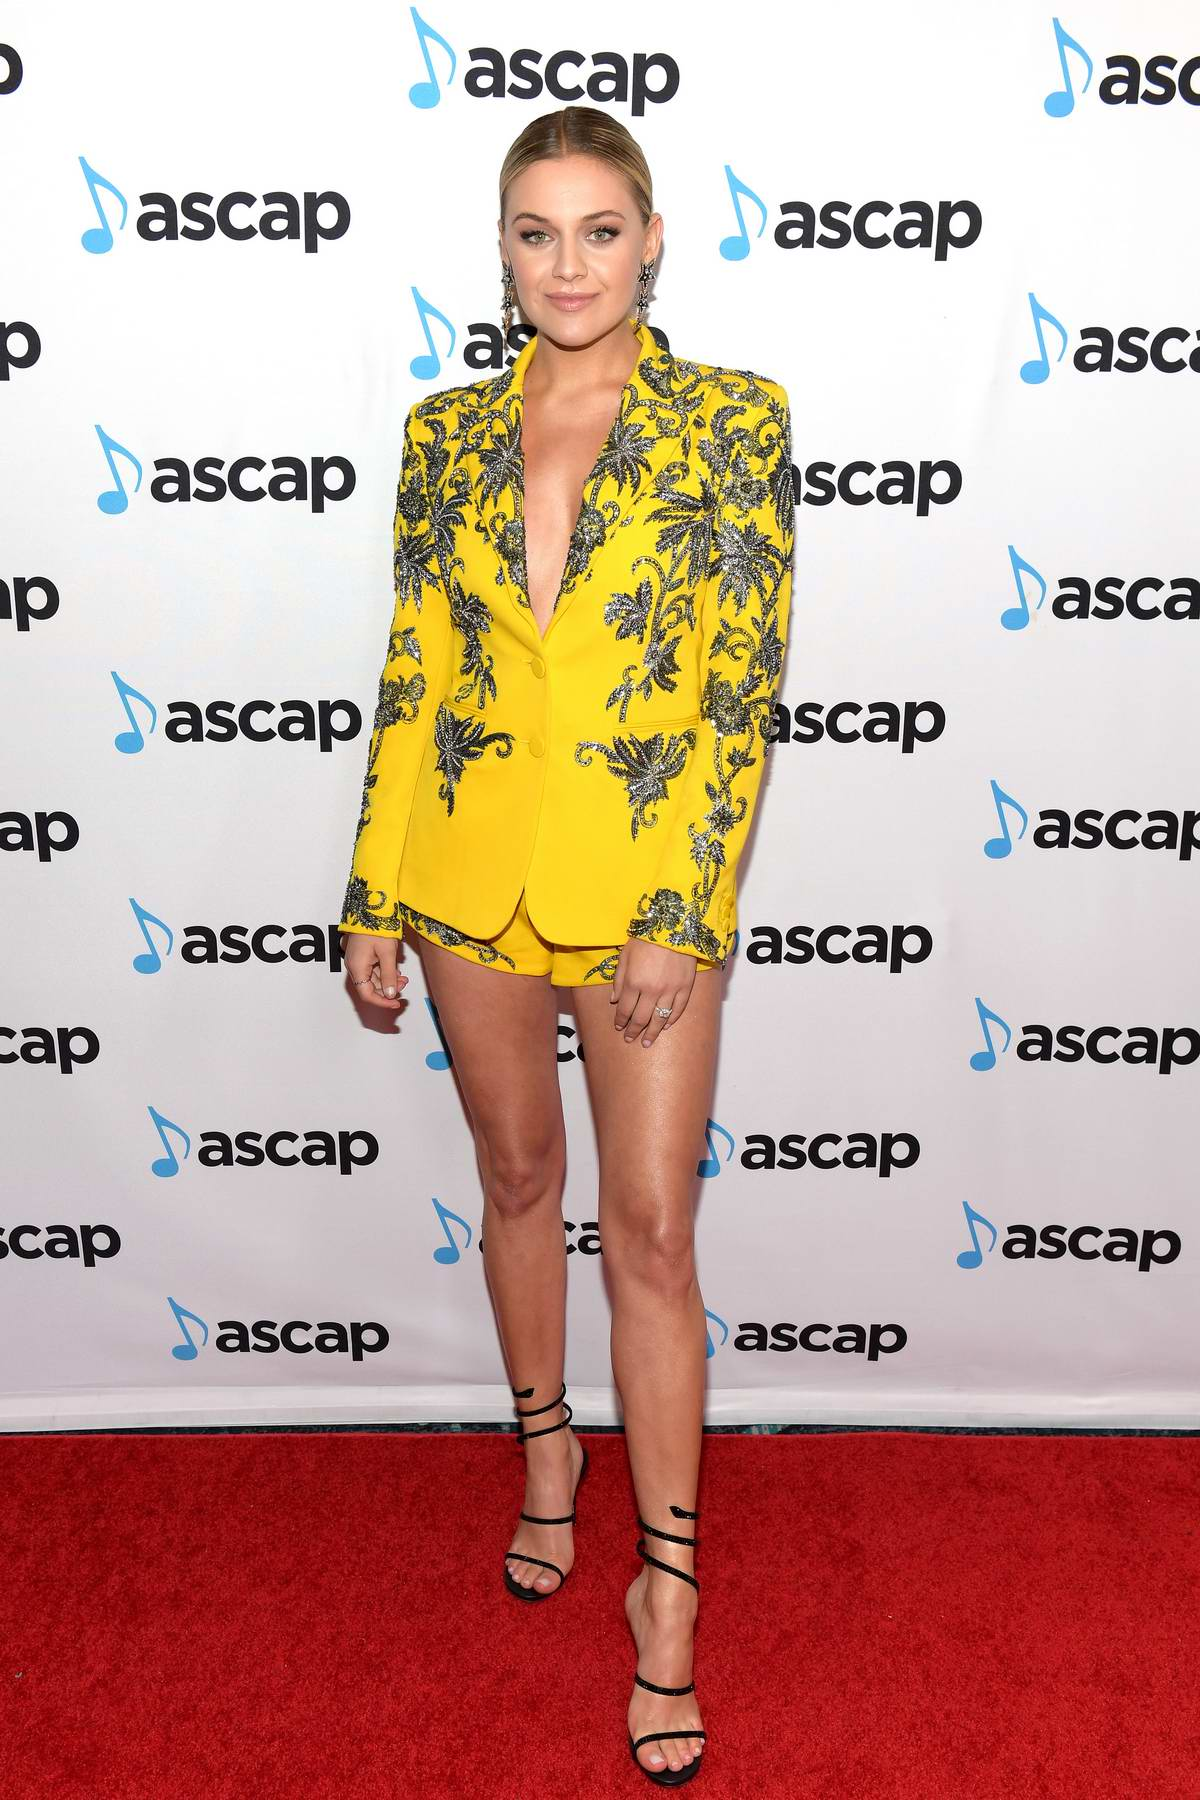 Kelsea Ballerini attends the 57th Annual ASCAP Country Music Awards in Nashville, TN